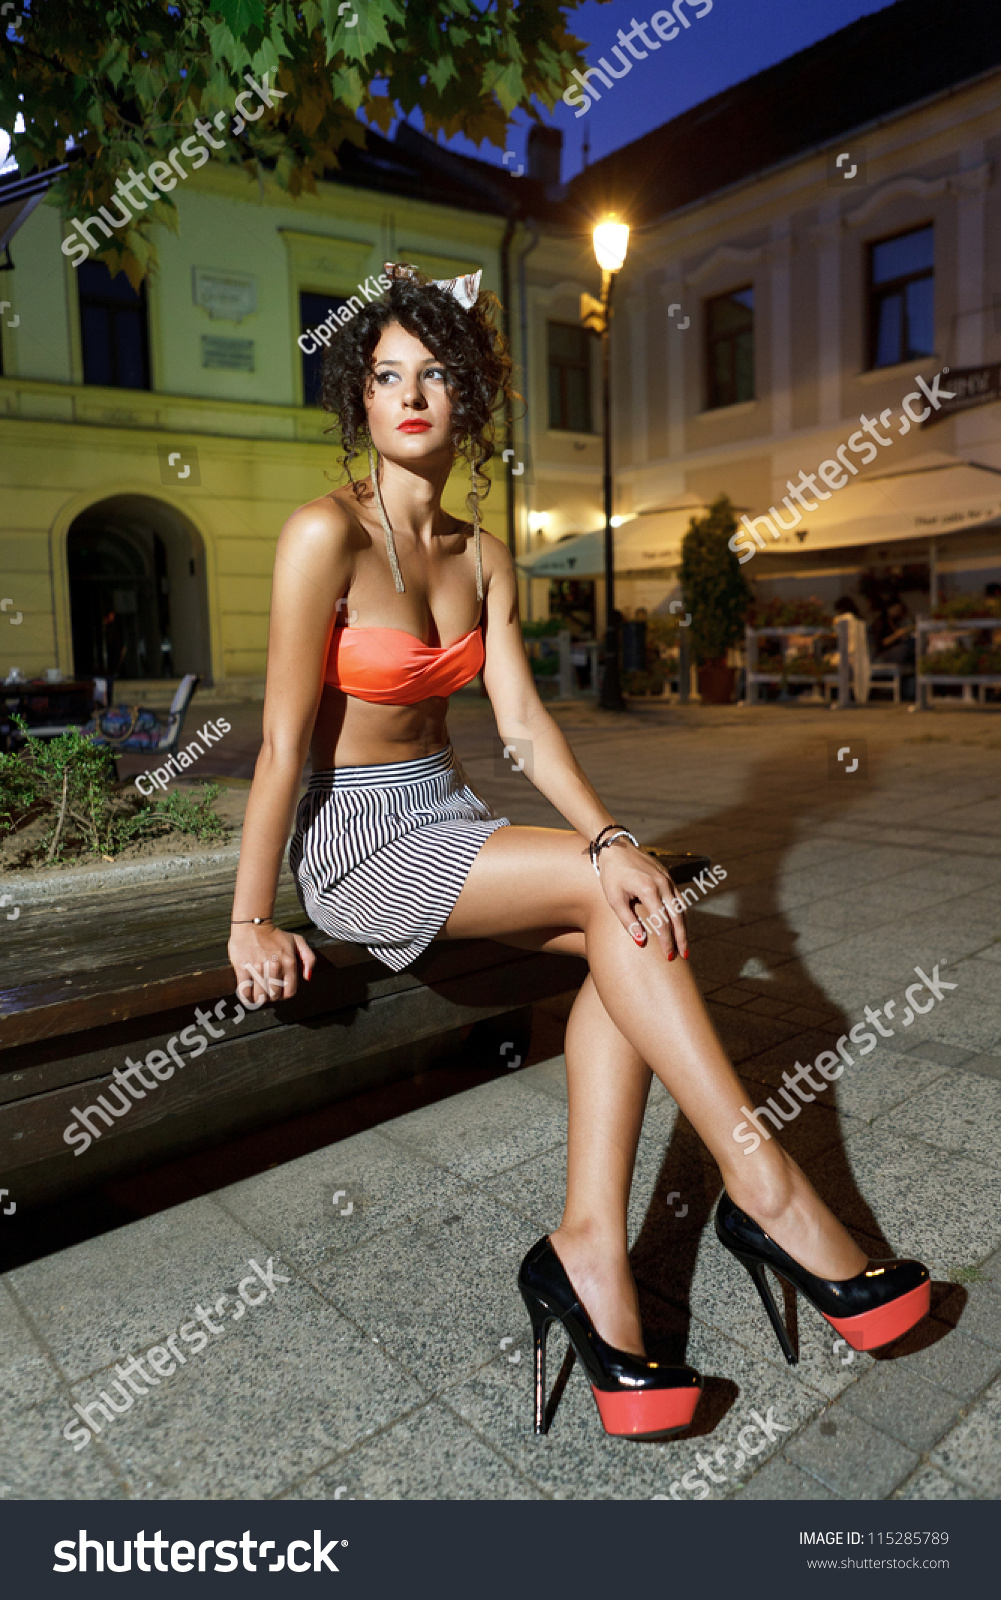 Beautiful Girl Orange Bra Short Skirt Stock Photo 115285789 ...